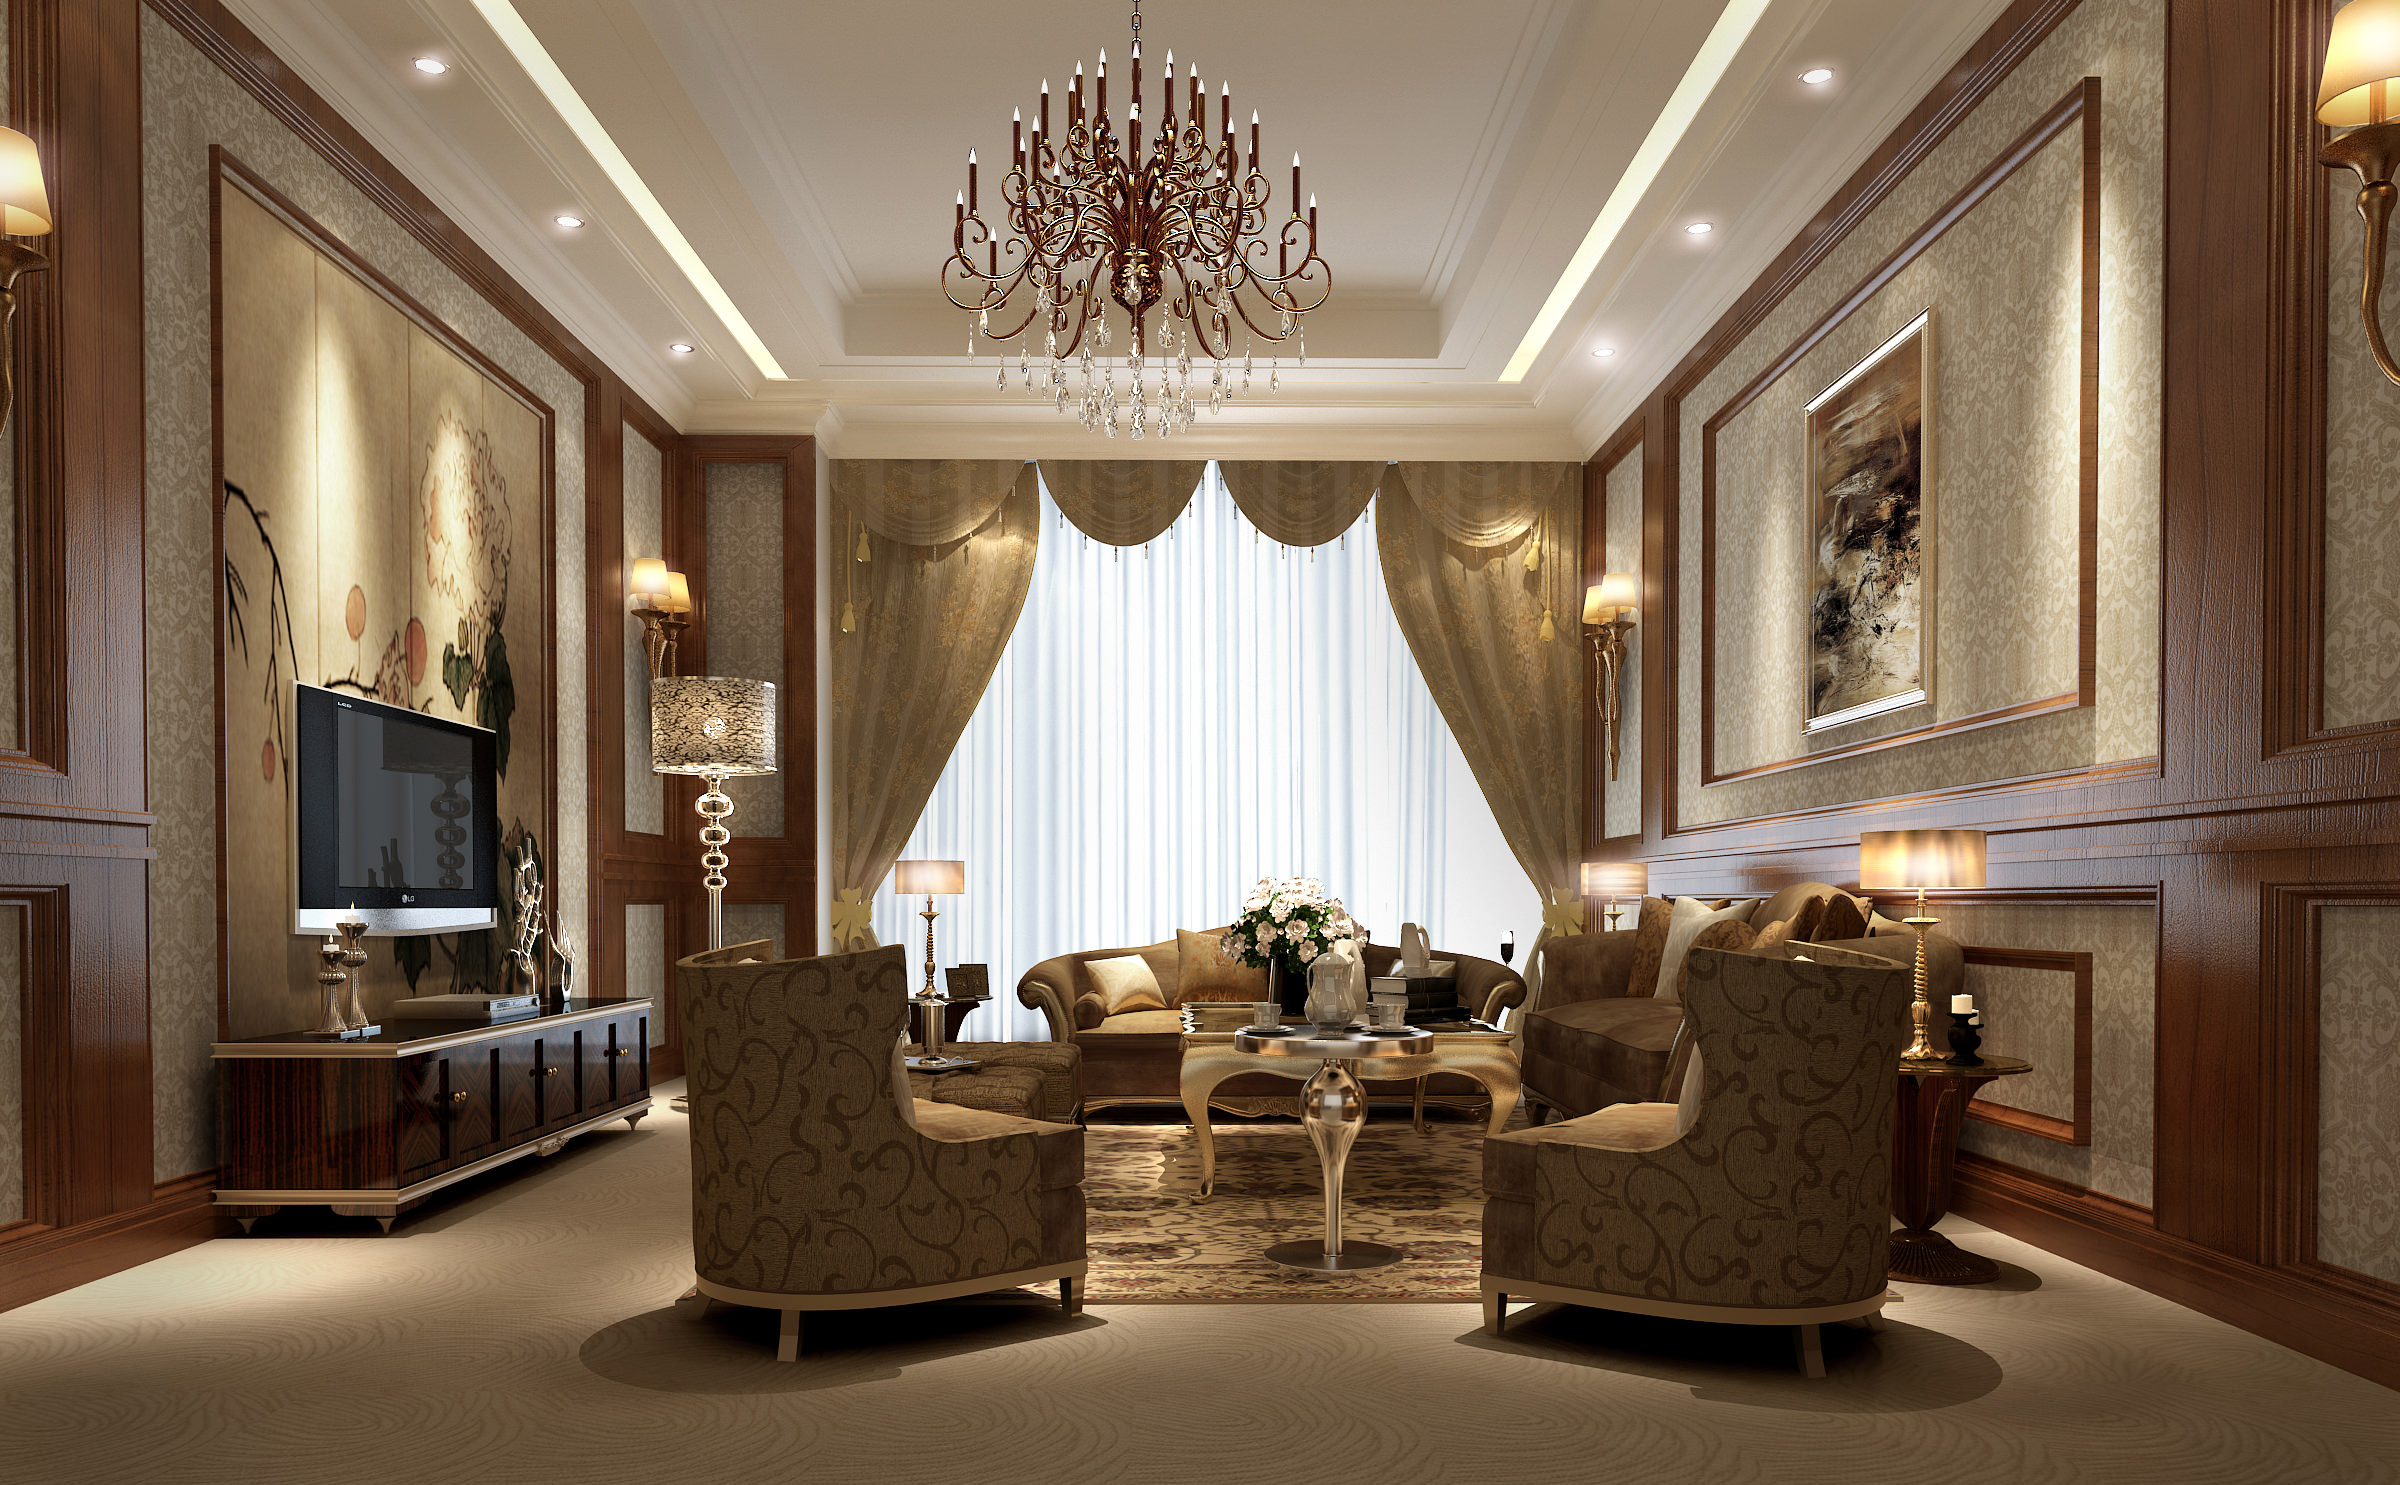 Luxury living room 3d model max for Beautiful wallpaper home decor